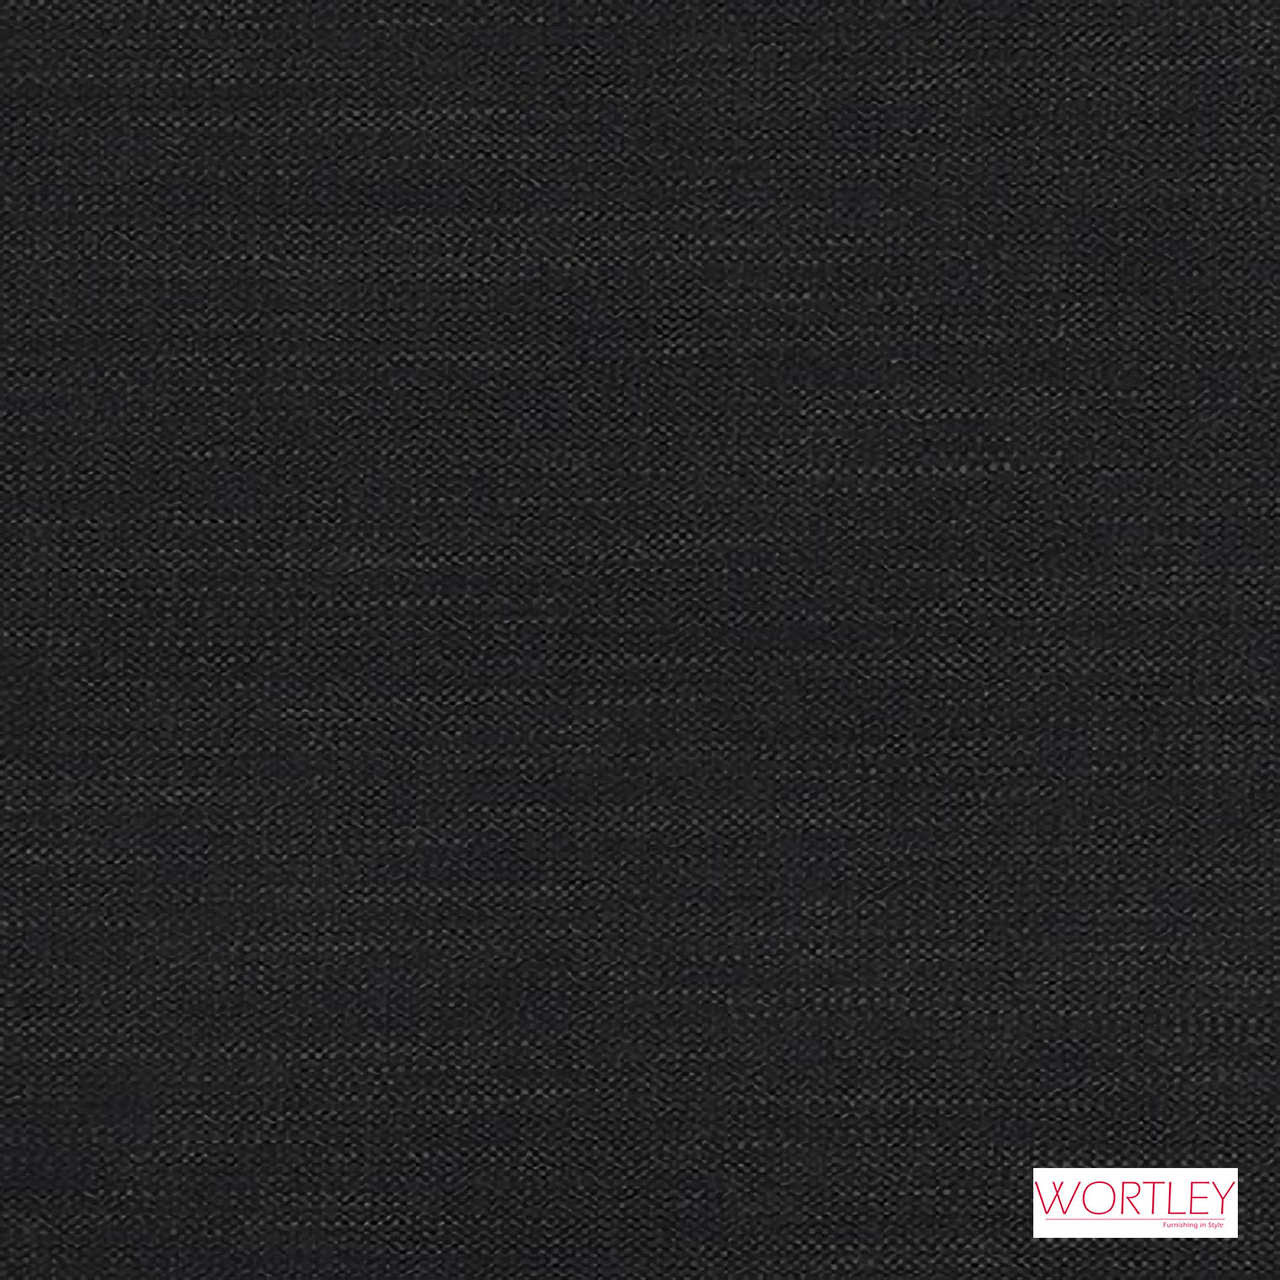 Wortley Group Maison Onyx  | Upholstery Fabric - Plain, Black - Charcoal, Fibre Blends, Domestic Use, Standard Width